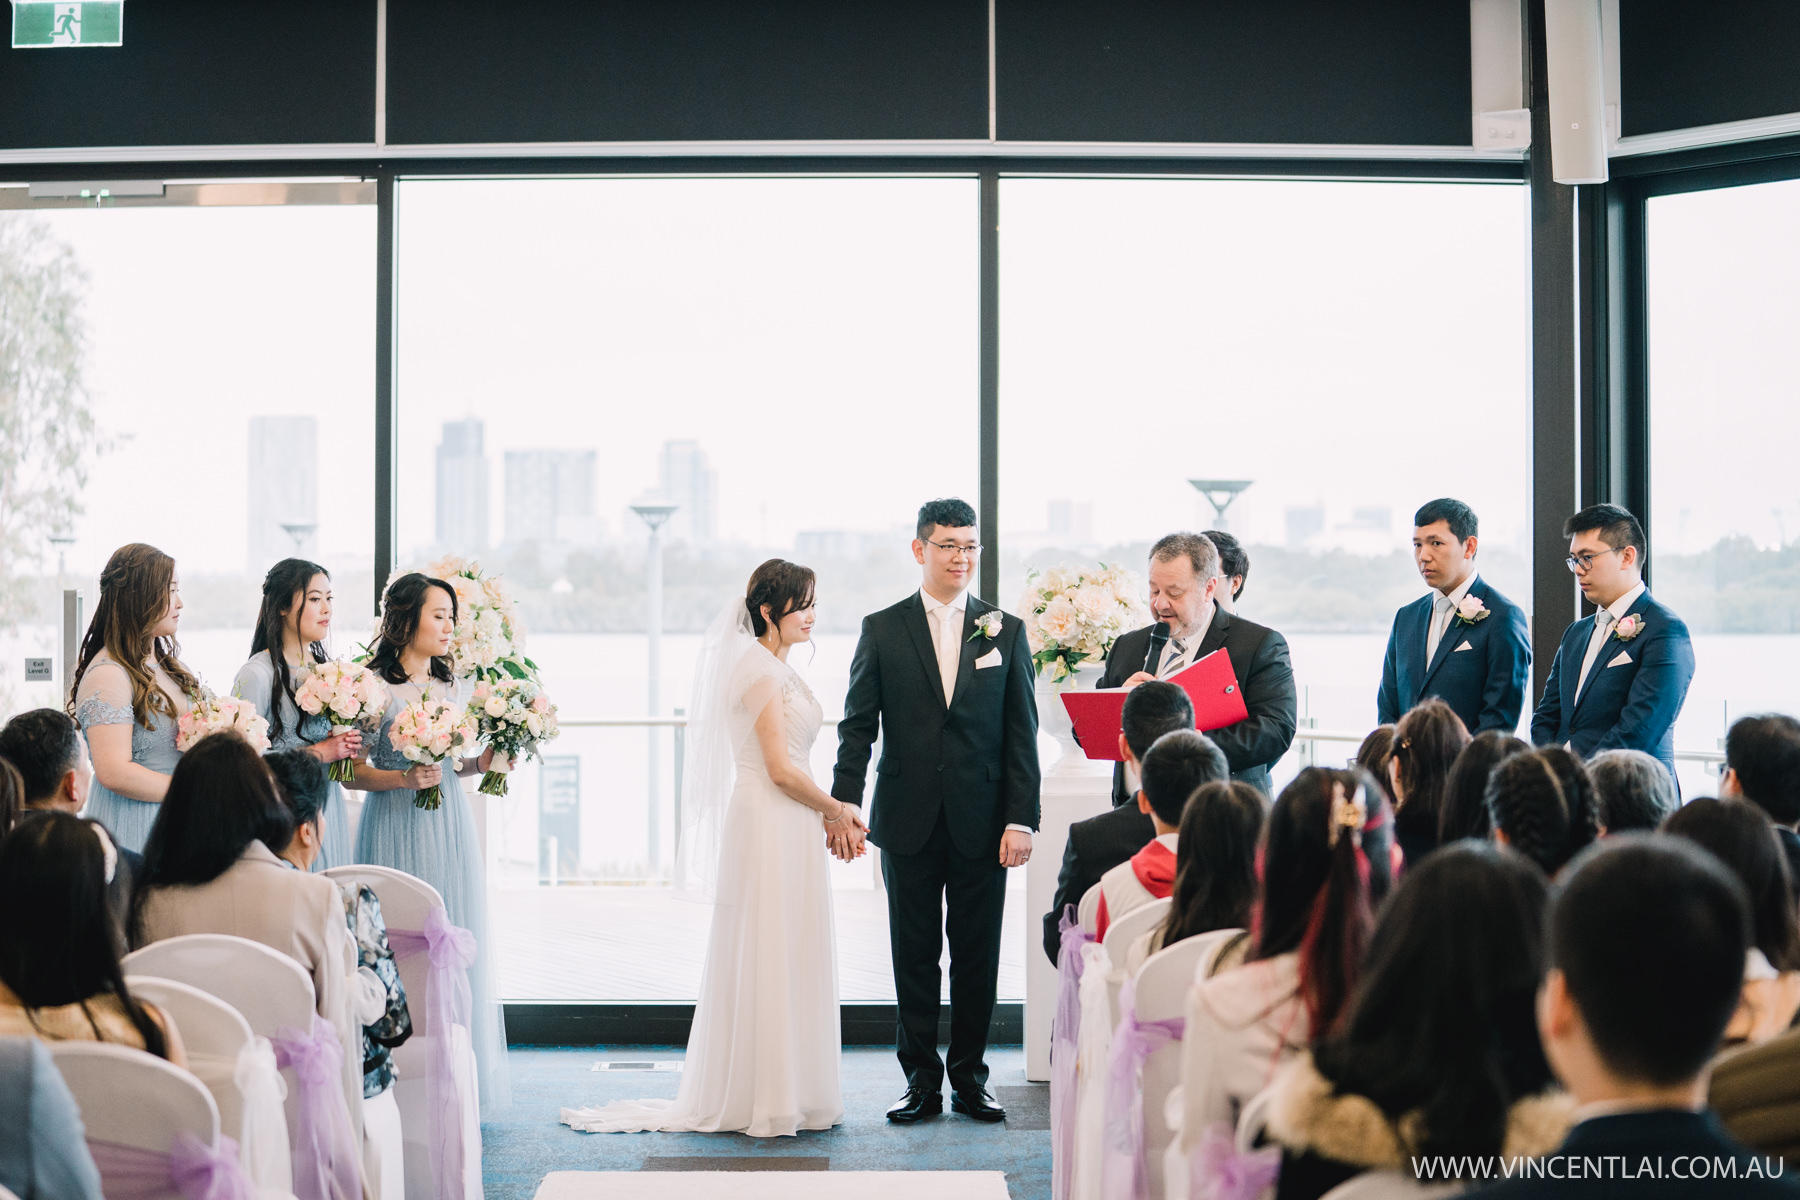 Wedding Ceremony at The Connection Rhodes